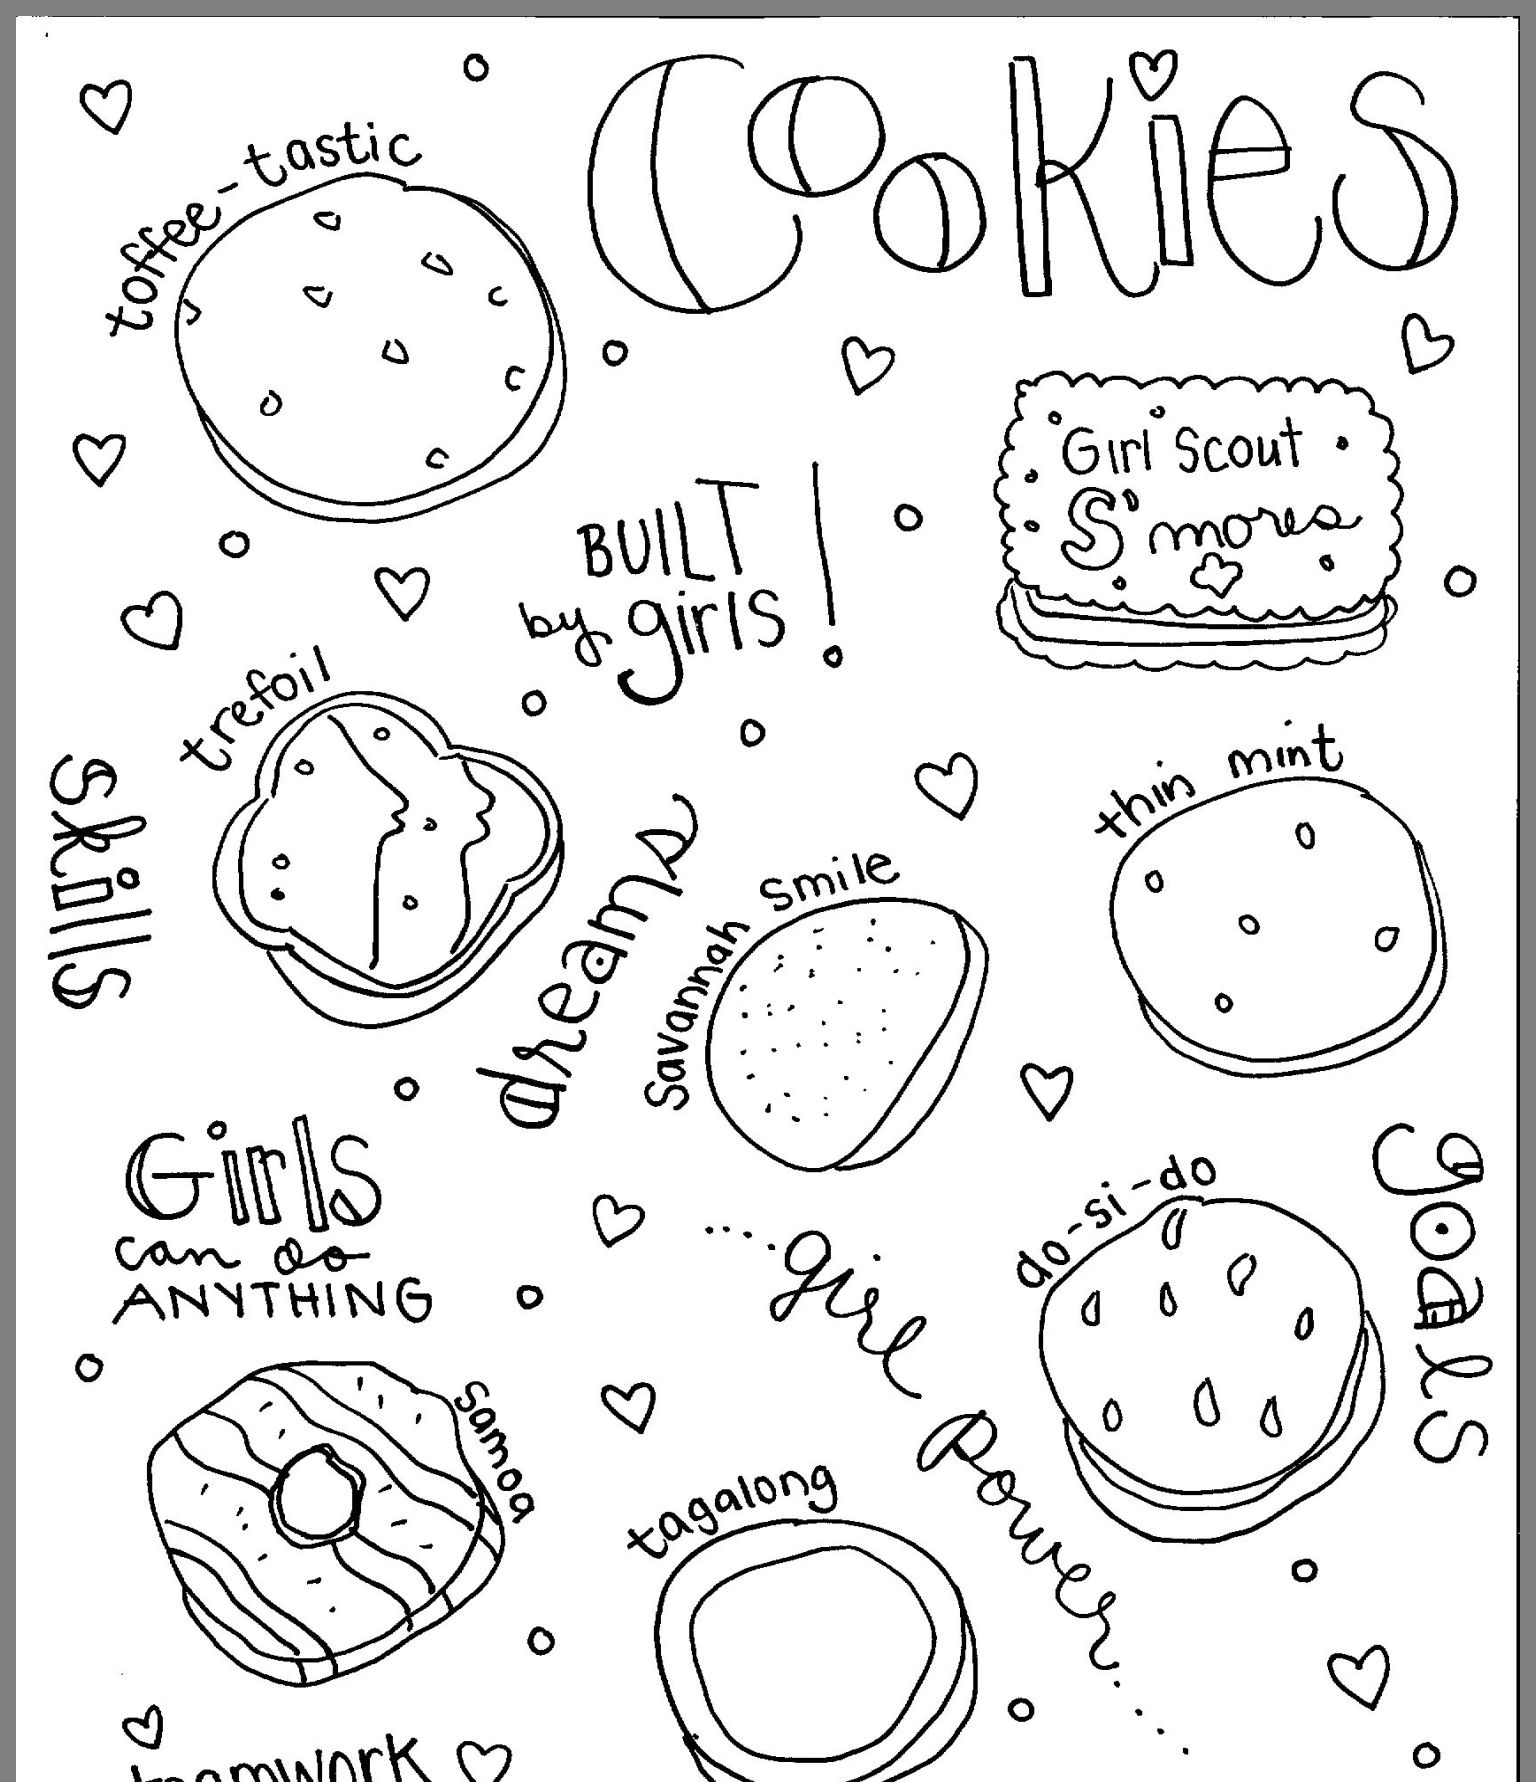 Girl Scout Cookies Image By Christina Angell On Girl